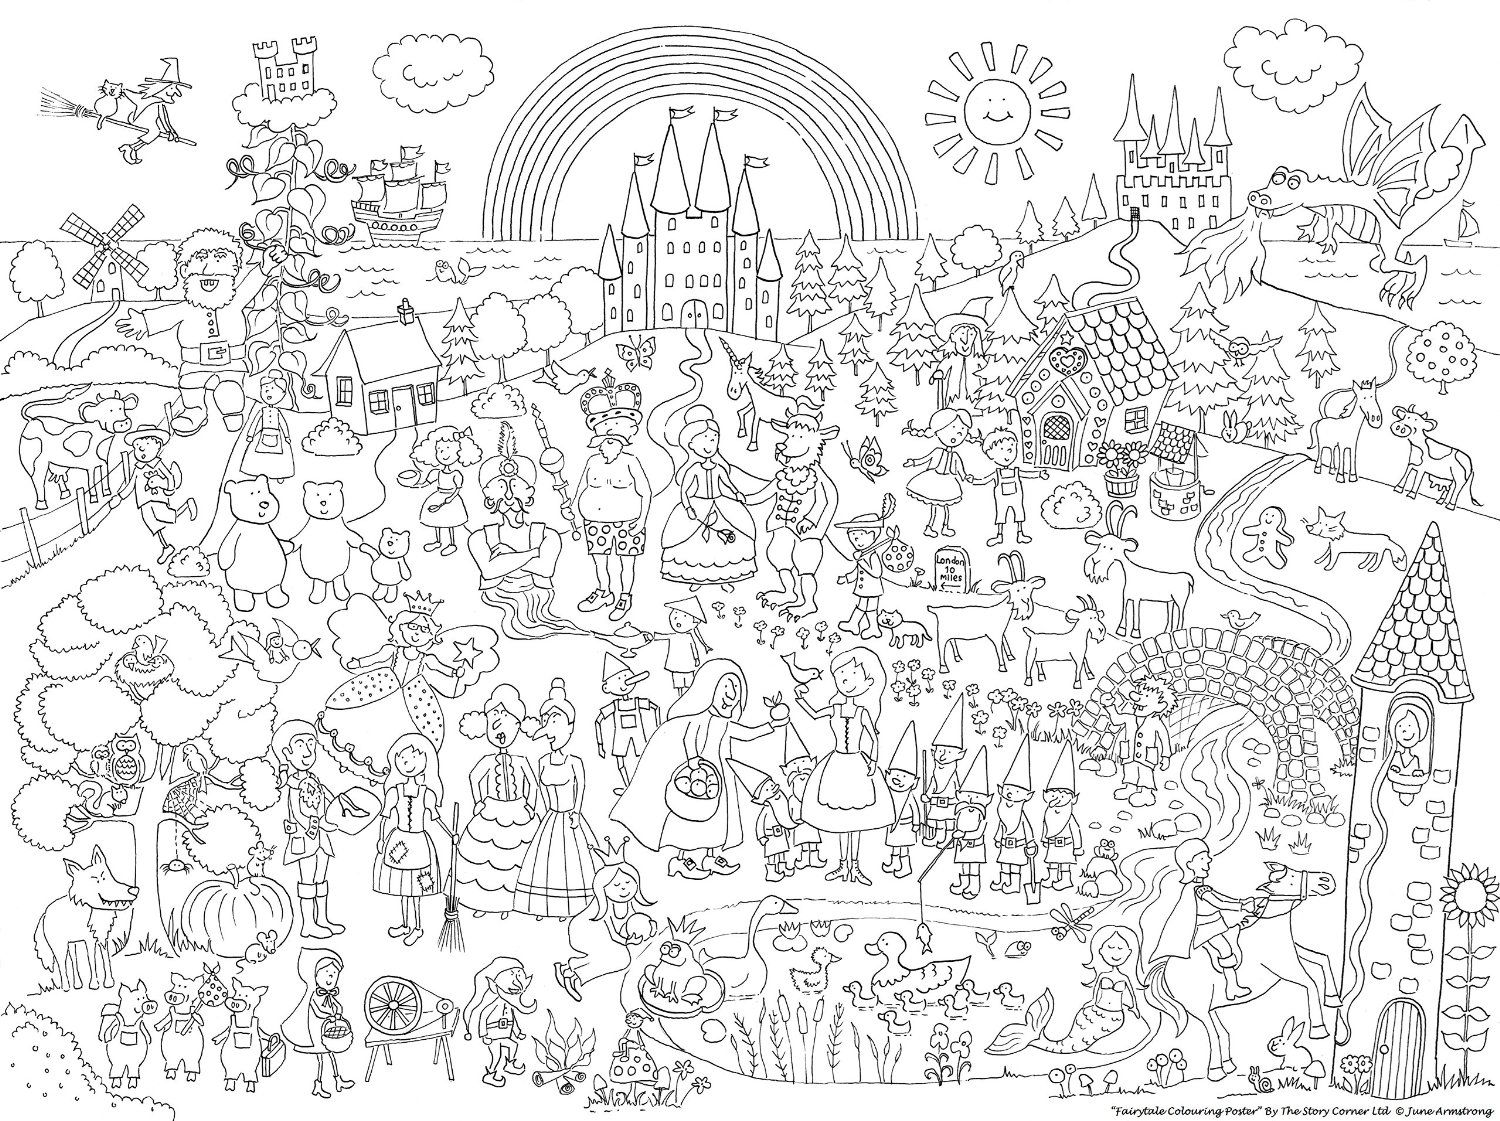 The Story Corner S Fairytale Colouring Poster By June Armstrong The Story Corner Ltd Amazon Co Uk Toys Games Coloring Books Color Fairy Tales